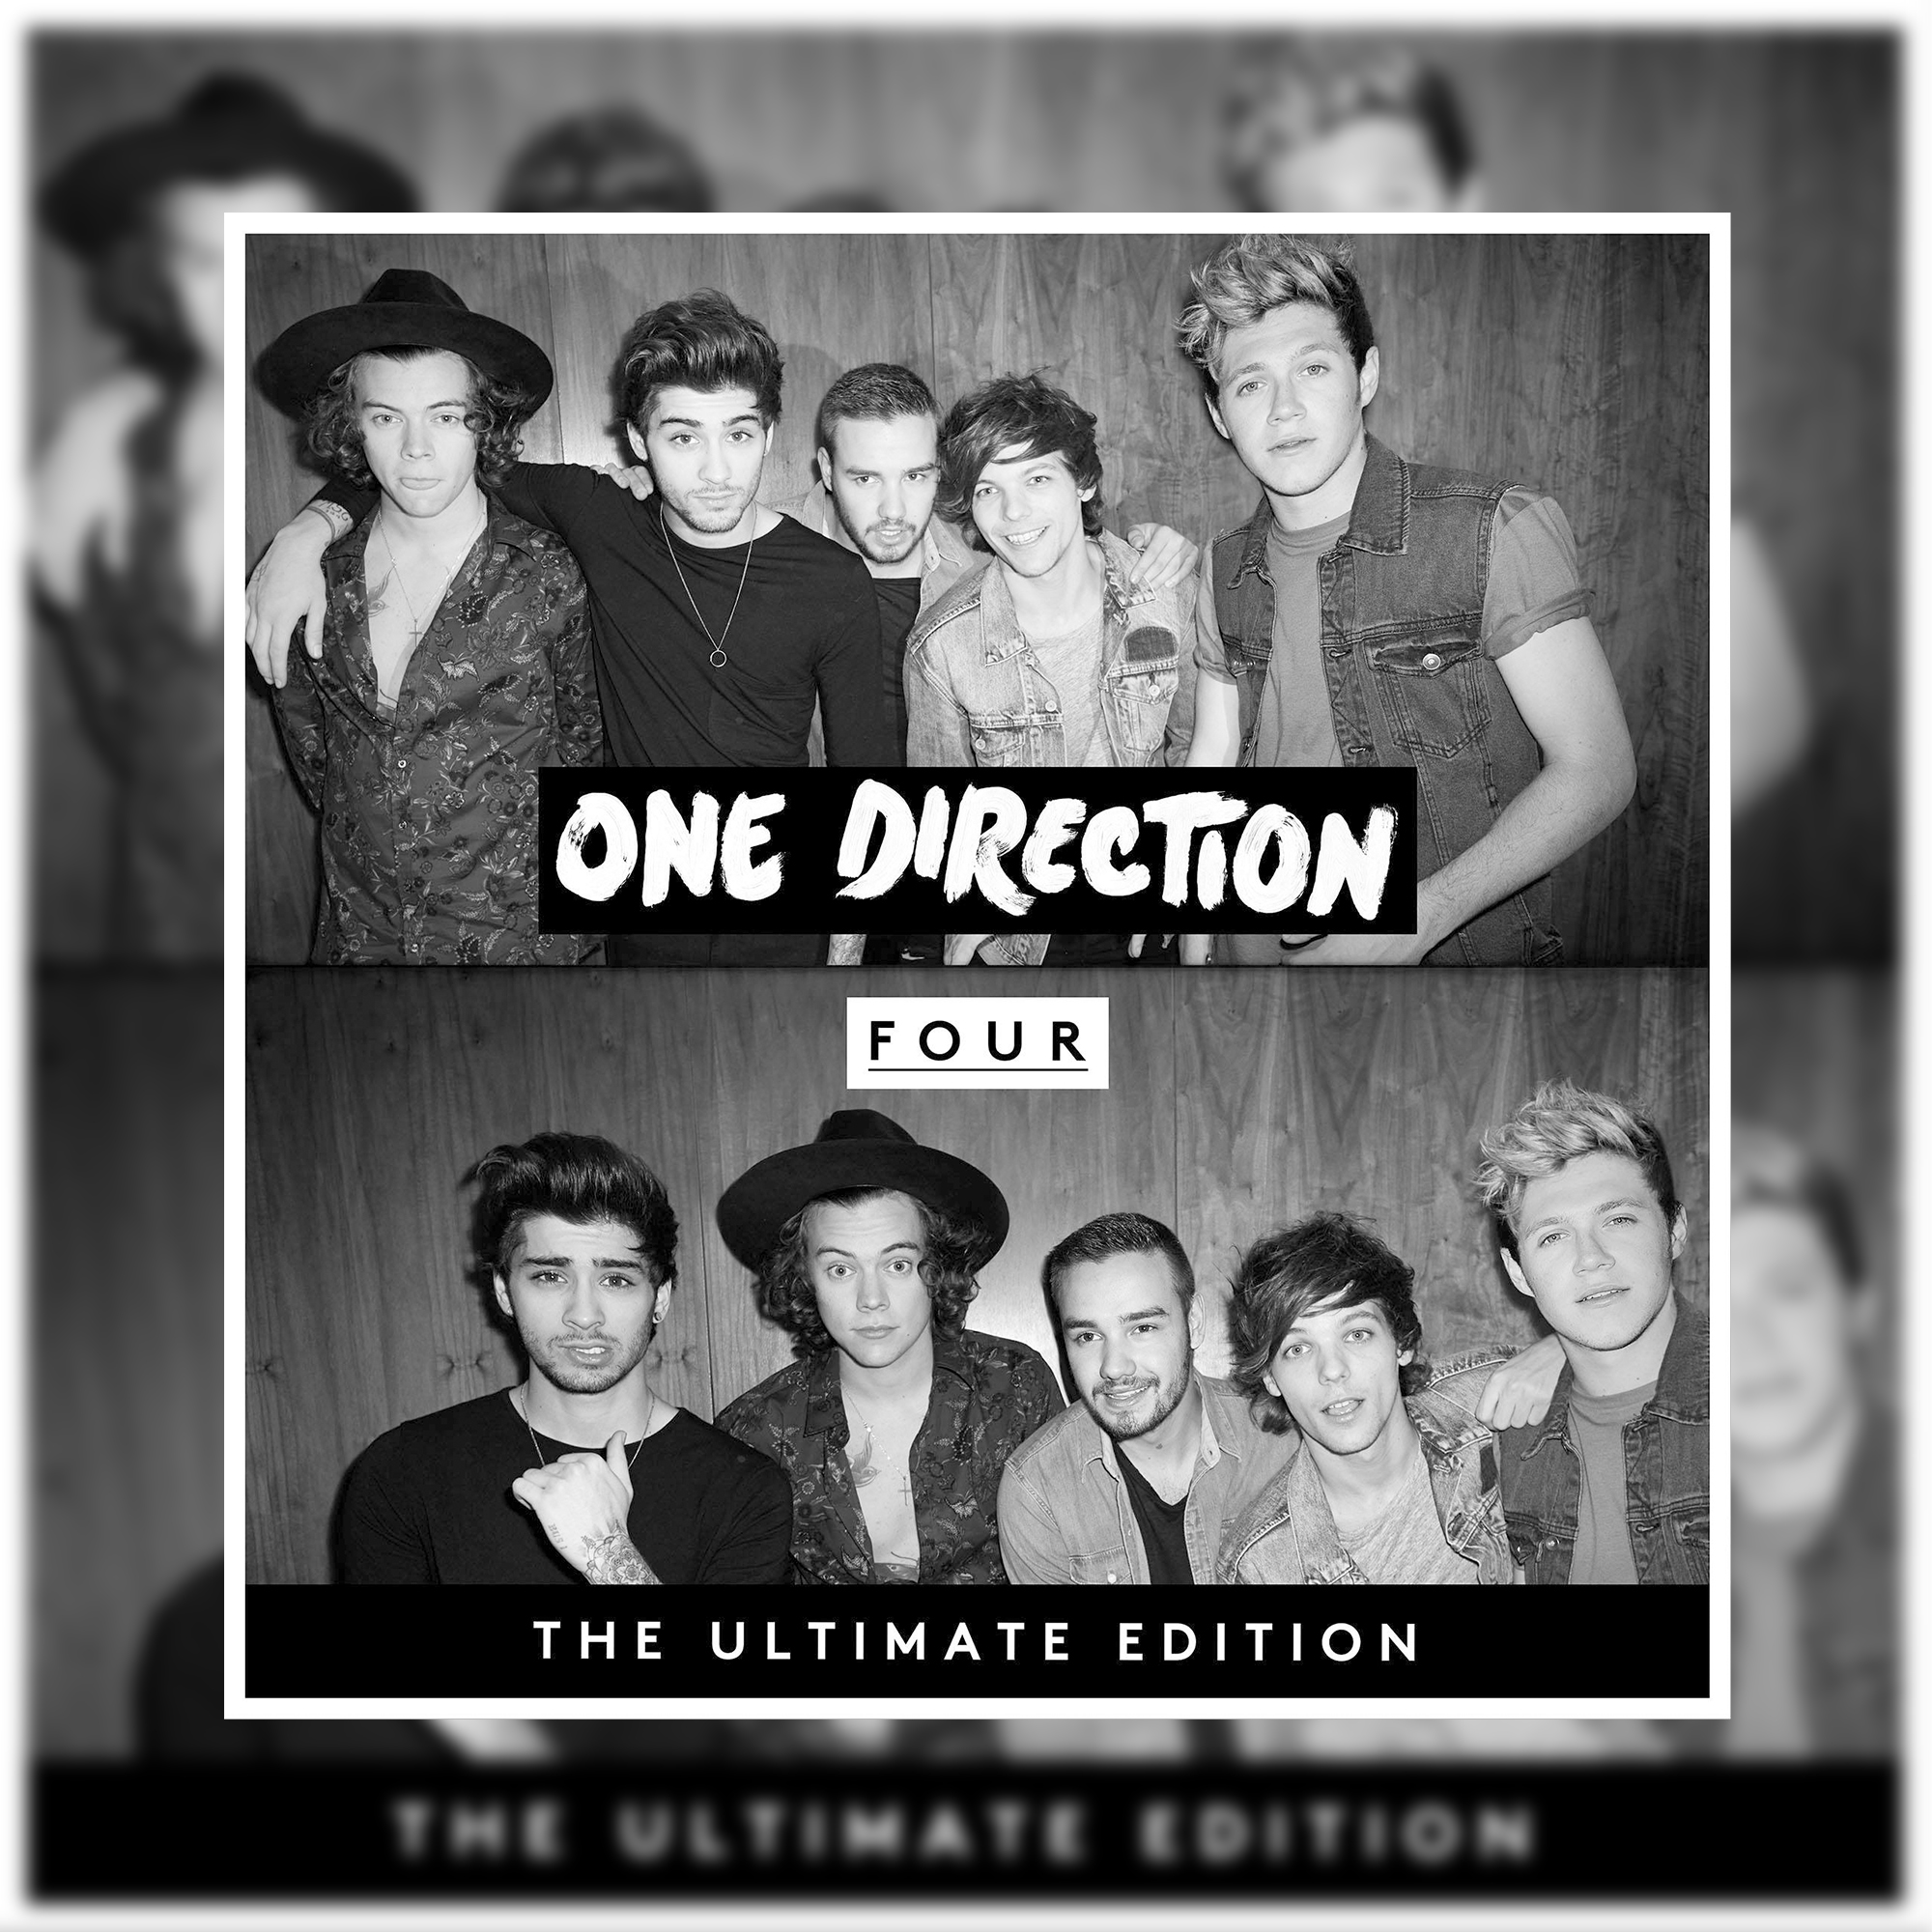 One direction four free album download home   facebook.